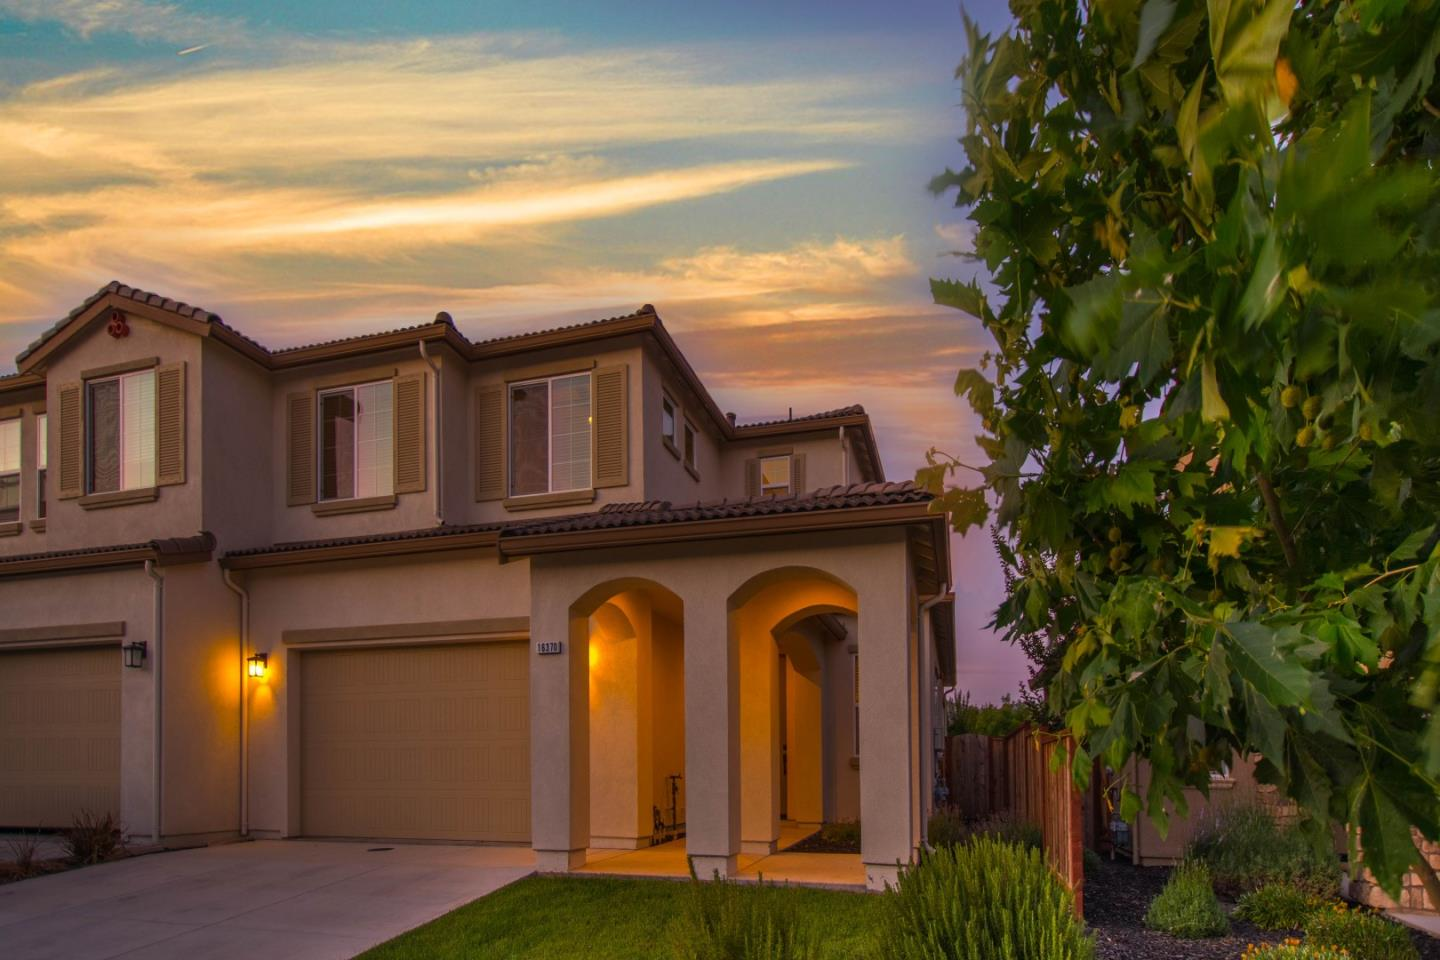 16370 San Domingo DR, Morgan Hill in Santa Clara County, CA 95037 Home for Sale